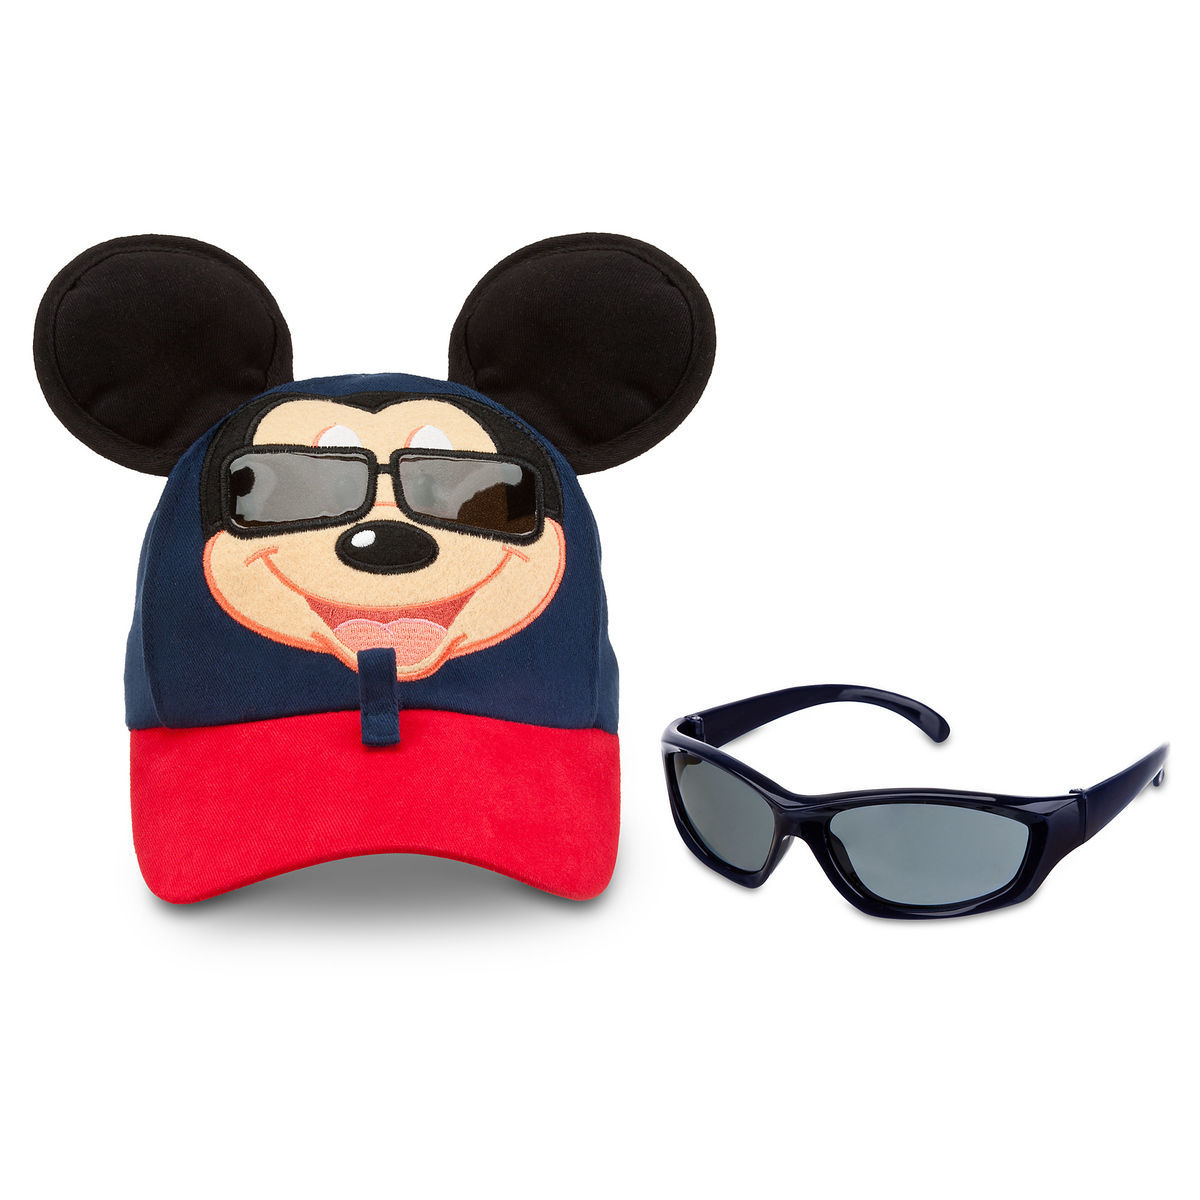 763662aa092 Product Image of Mickey Mouse Baseball Cap for Toddlers with Sunglasses   2